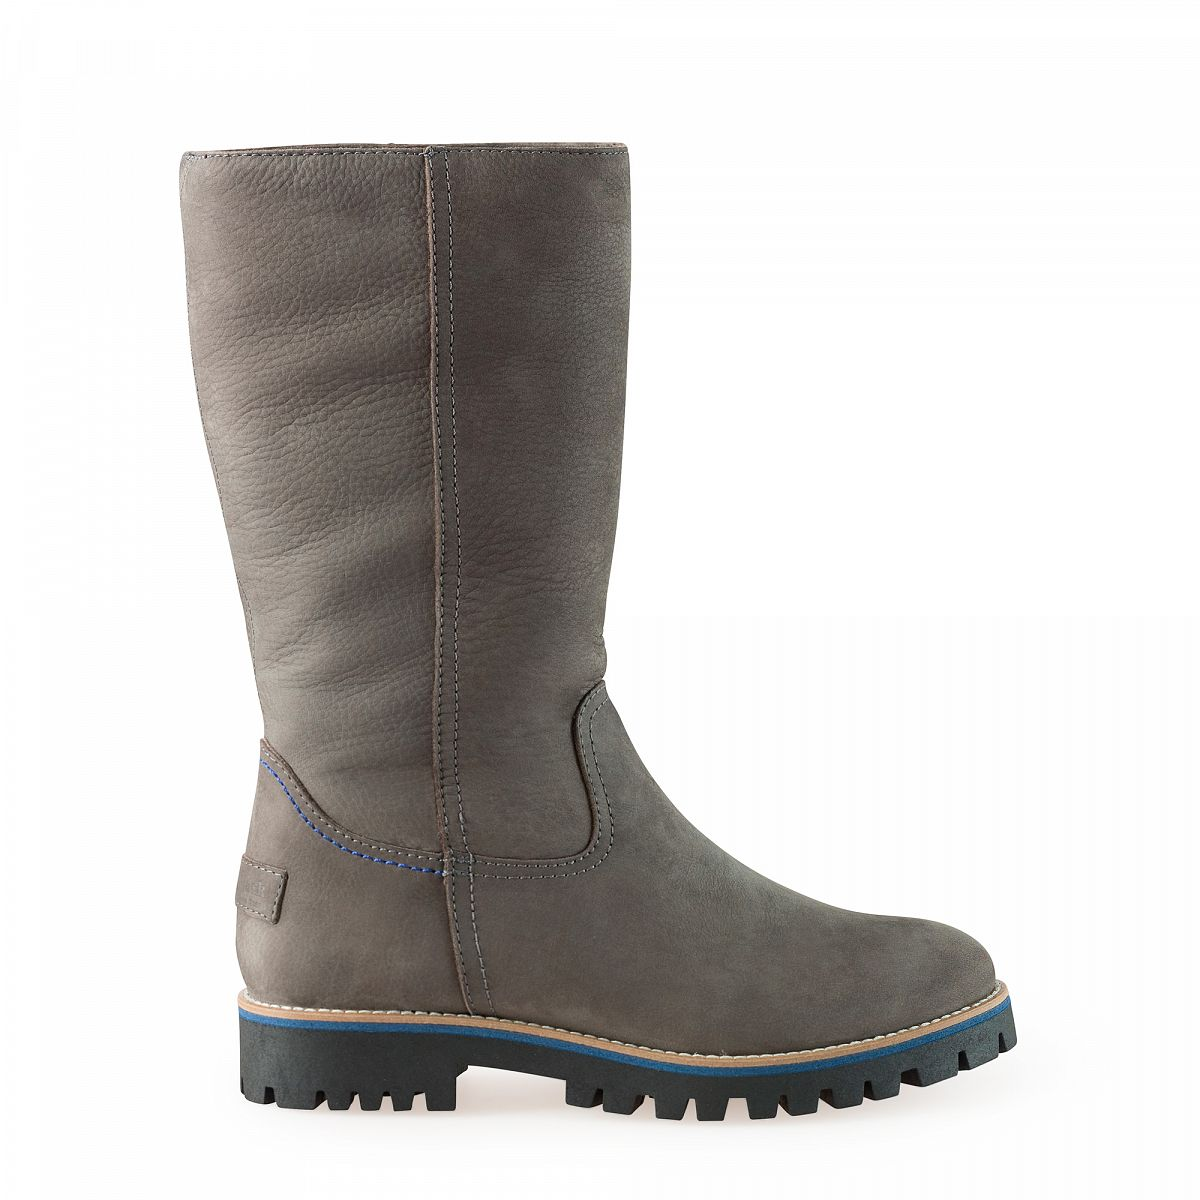 Womens boots tania grey panama jack 174 official online shop